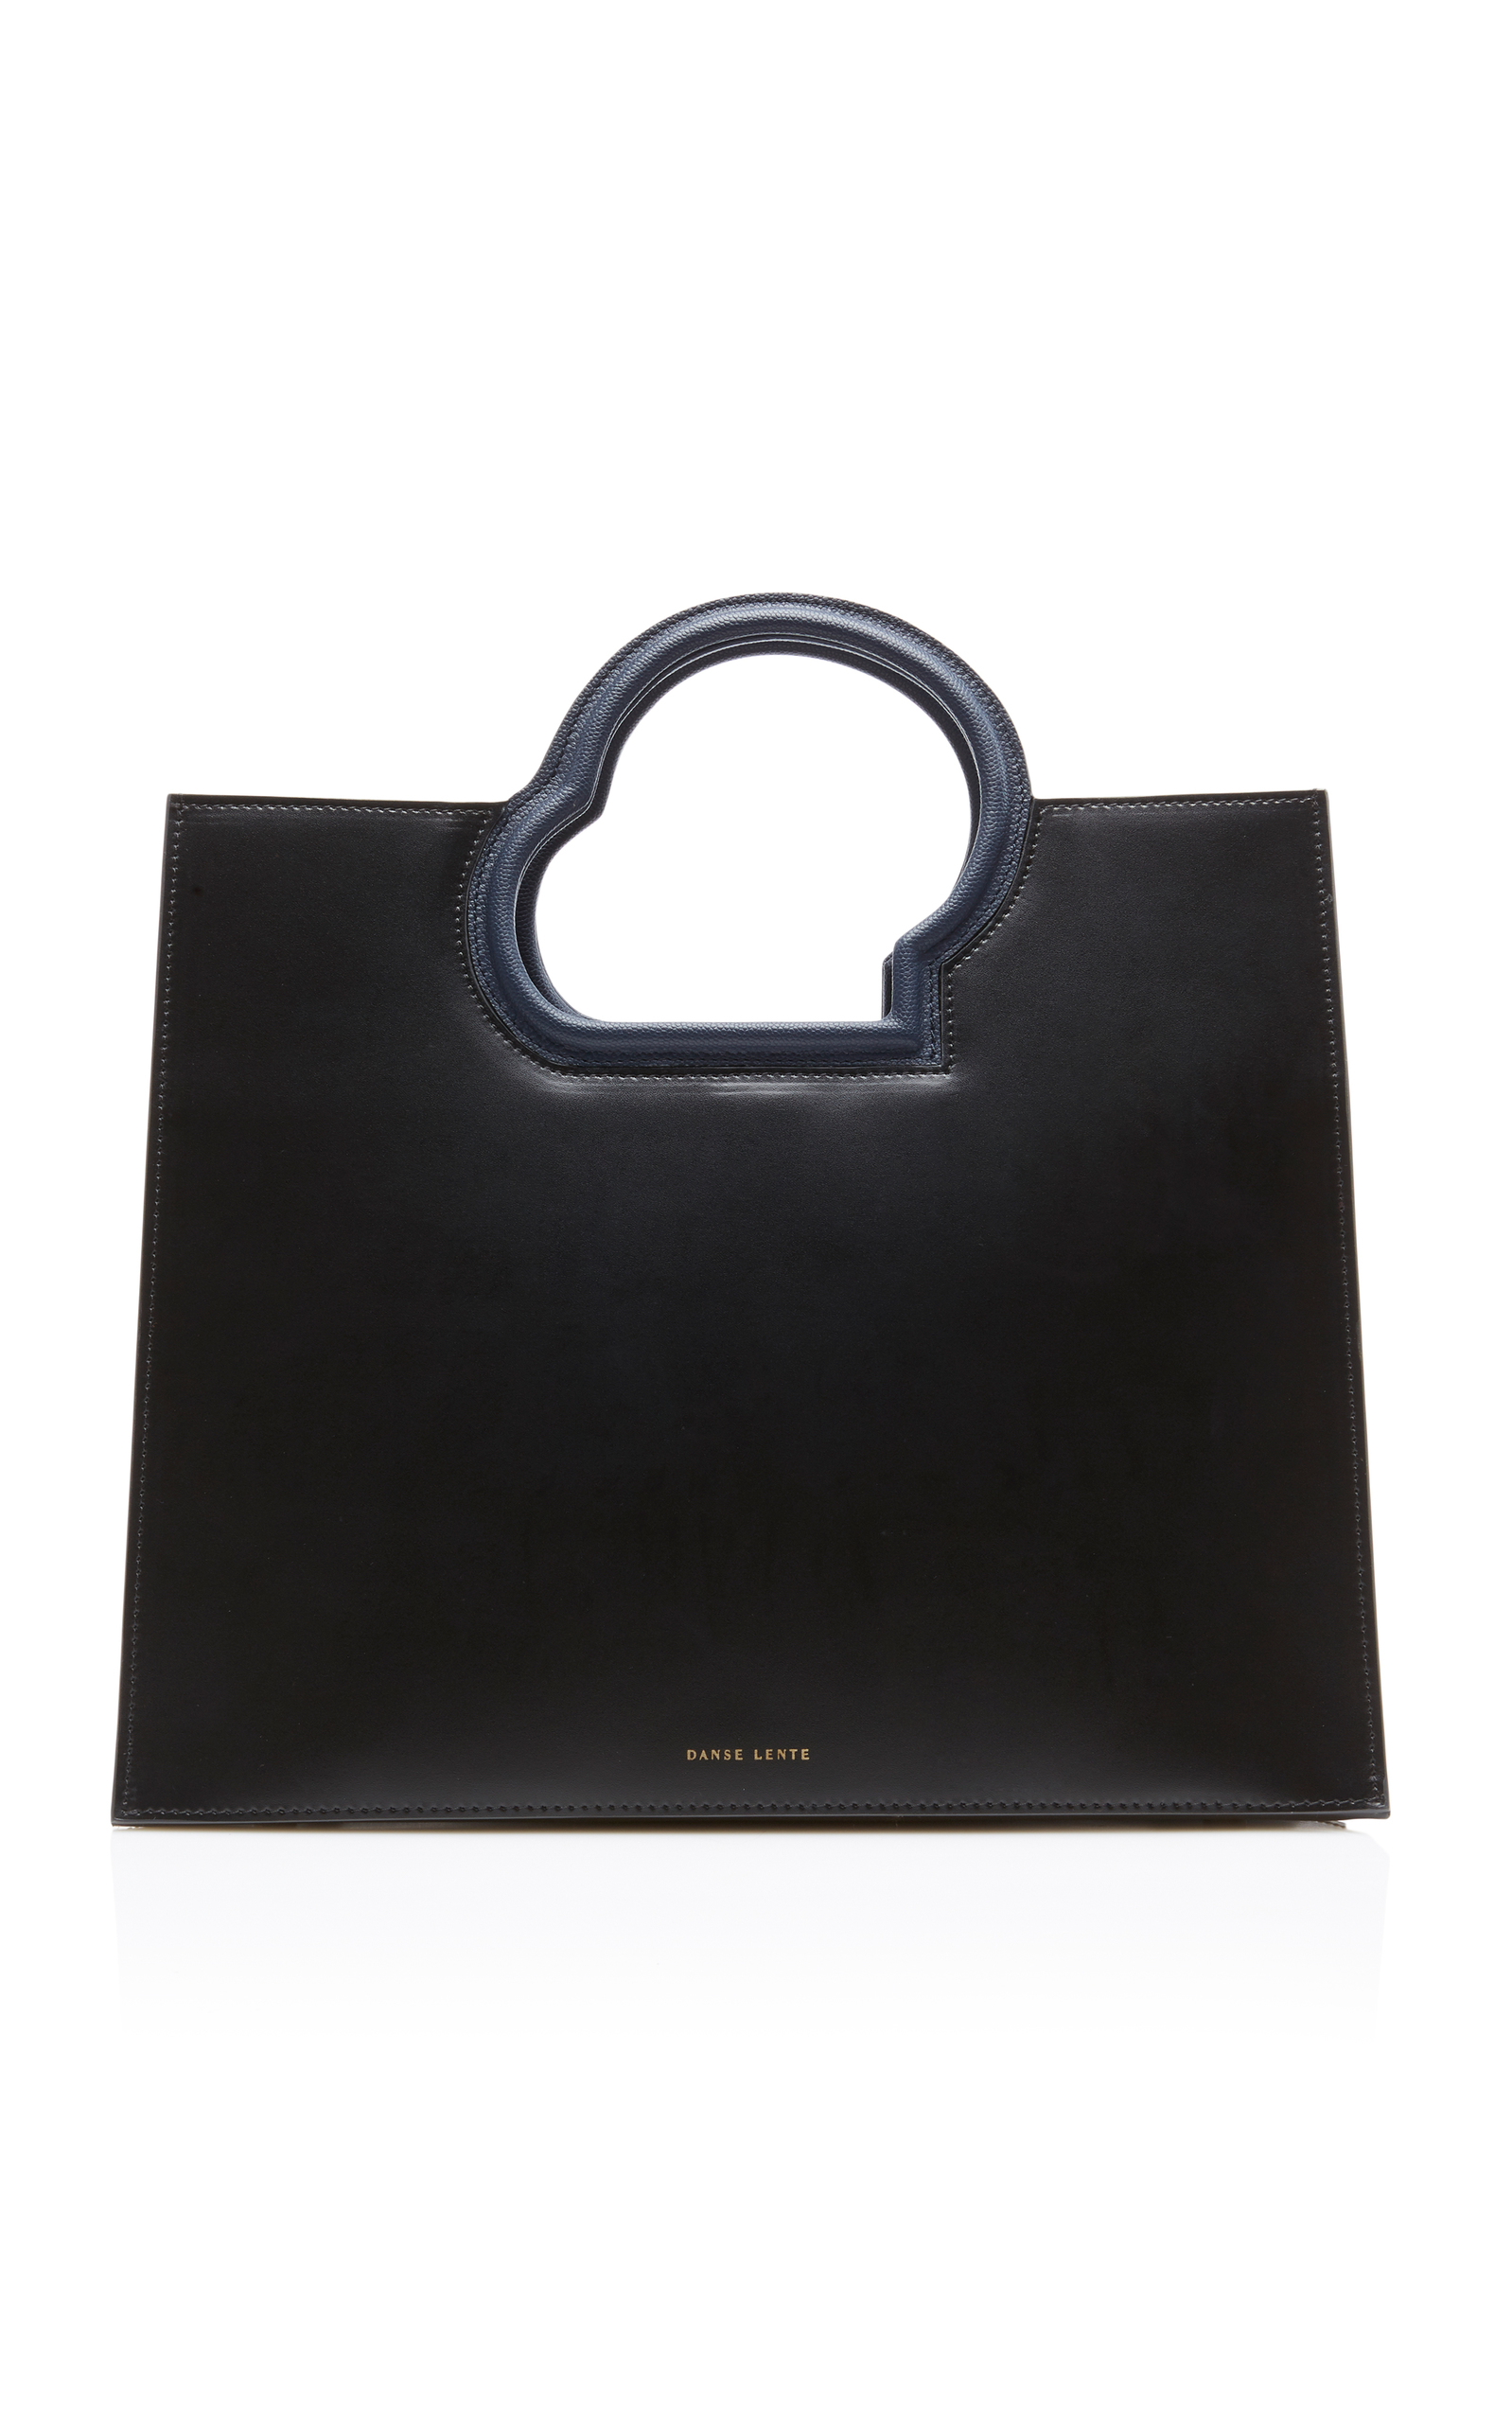 DANSE LENTE Nour Leather Tote in Black